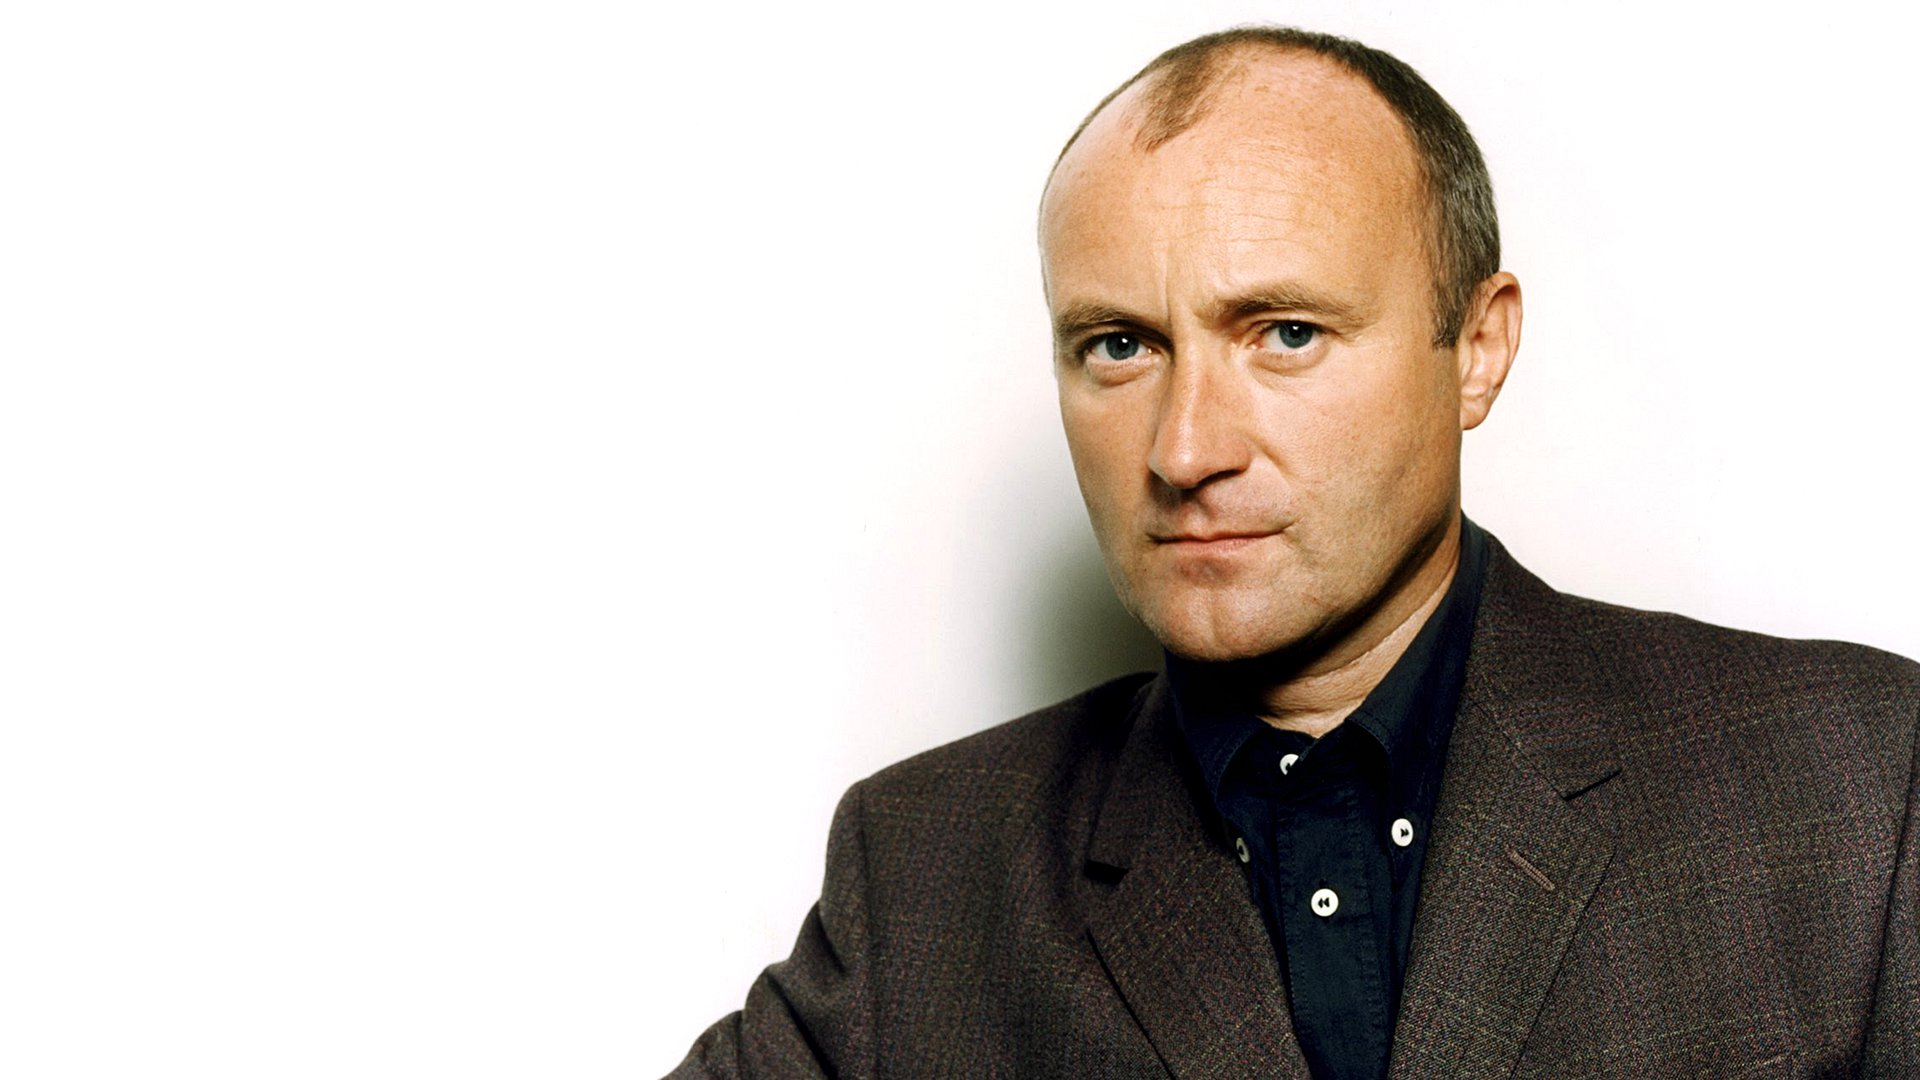 phil collins in the air tonight скачатьphil collins - in the air tonight, phil collins in the air tonight скачать, phil collins in the air tonight перевод, phil collins mp3, phil collins слушать, phil collins paradise, phil collins i don't care anymore, phil collins i can't dance, phil collins against all odds, phil collins mama, phil collins you'll be in my heart, phil collins one more night, phil collins songs, phil collins in the air tonight lyrics, phil collins true colors, phil collins песни, phil collins sussudio, phil collins face value, phil collins in the air, phil collins easy lover